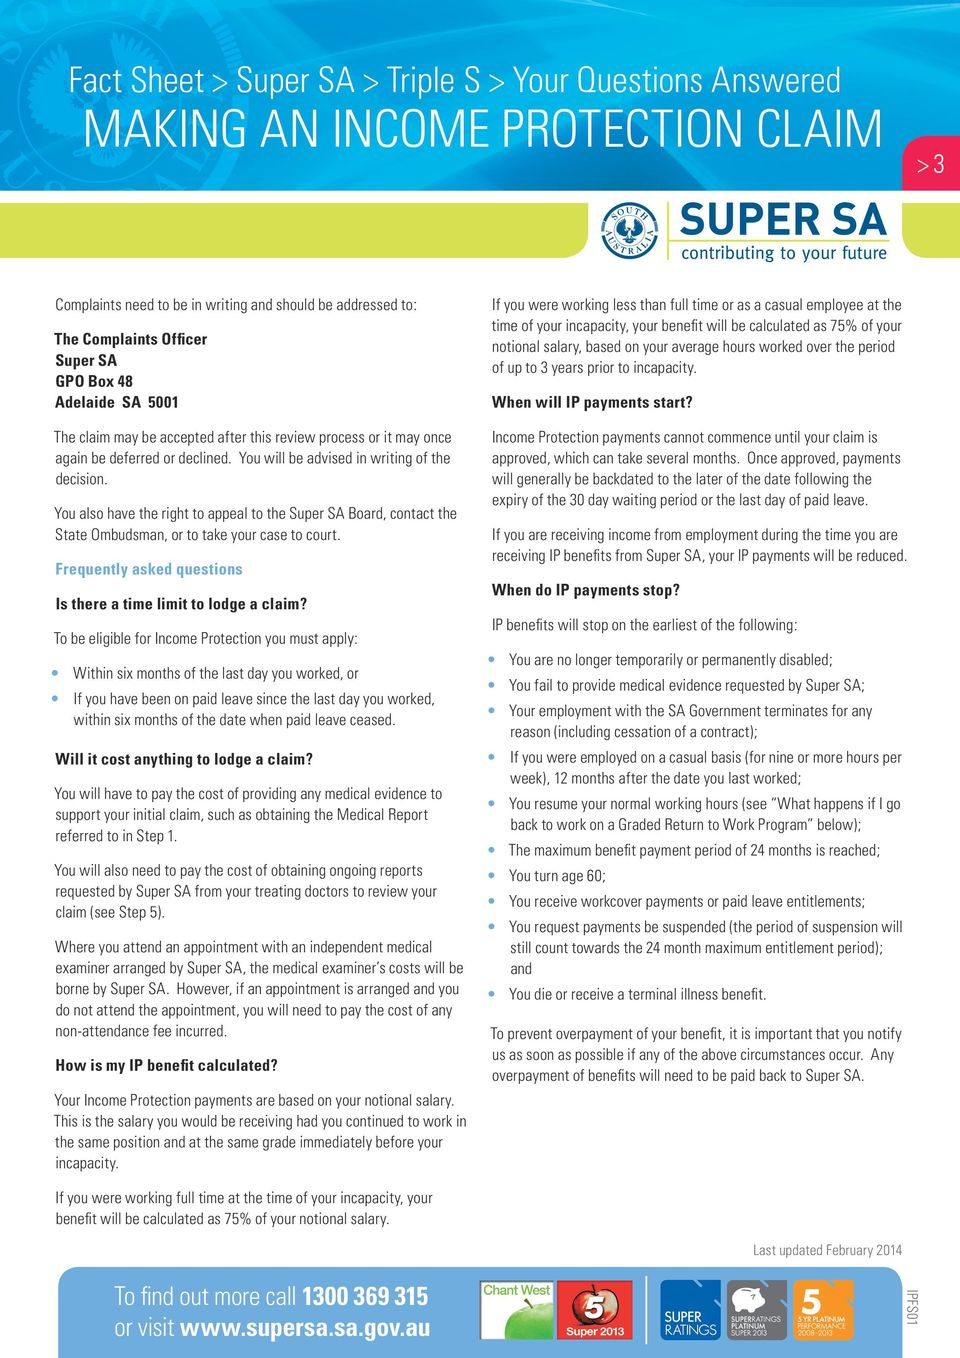 You also have the right to appeal to the Super SA Board, contact the State Ombudsman, or to take your case to court. Frequently asked questions Is there a time limit to lodge a claim?